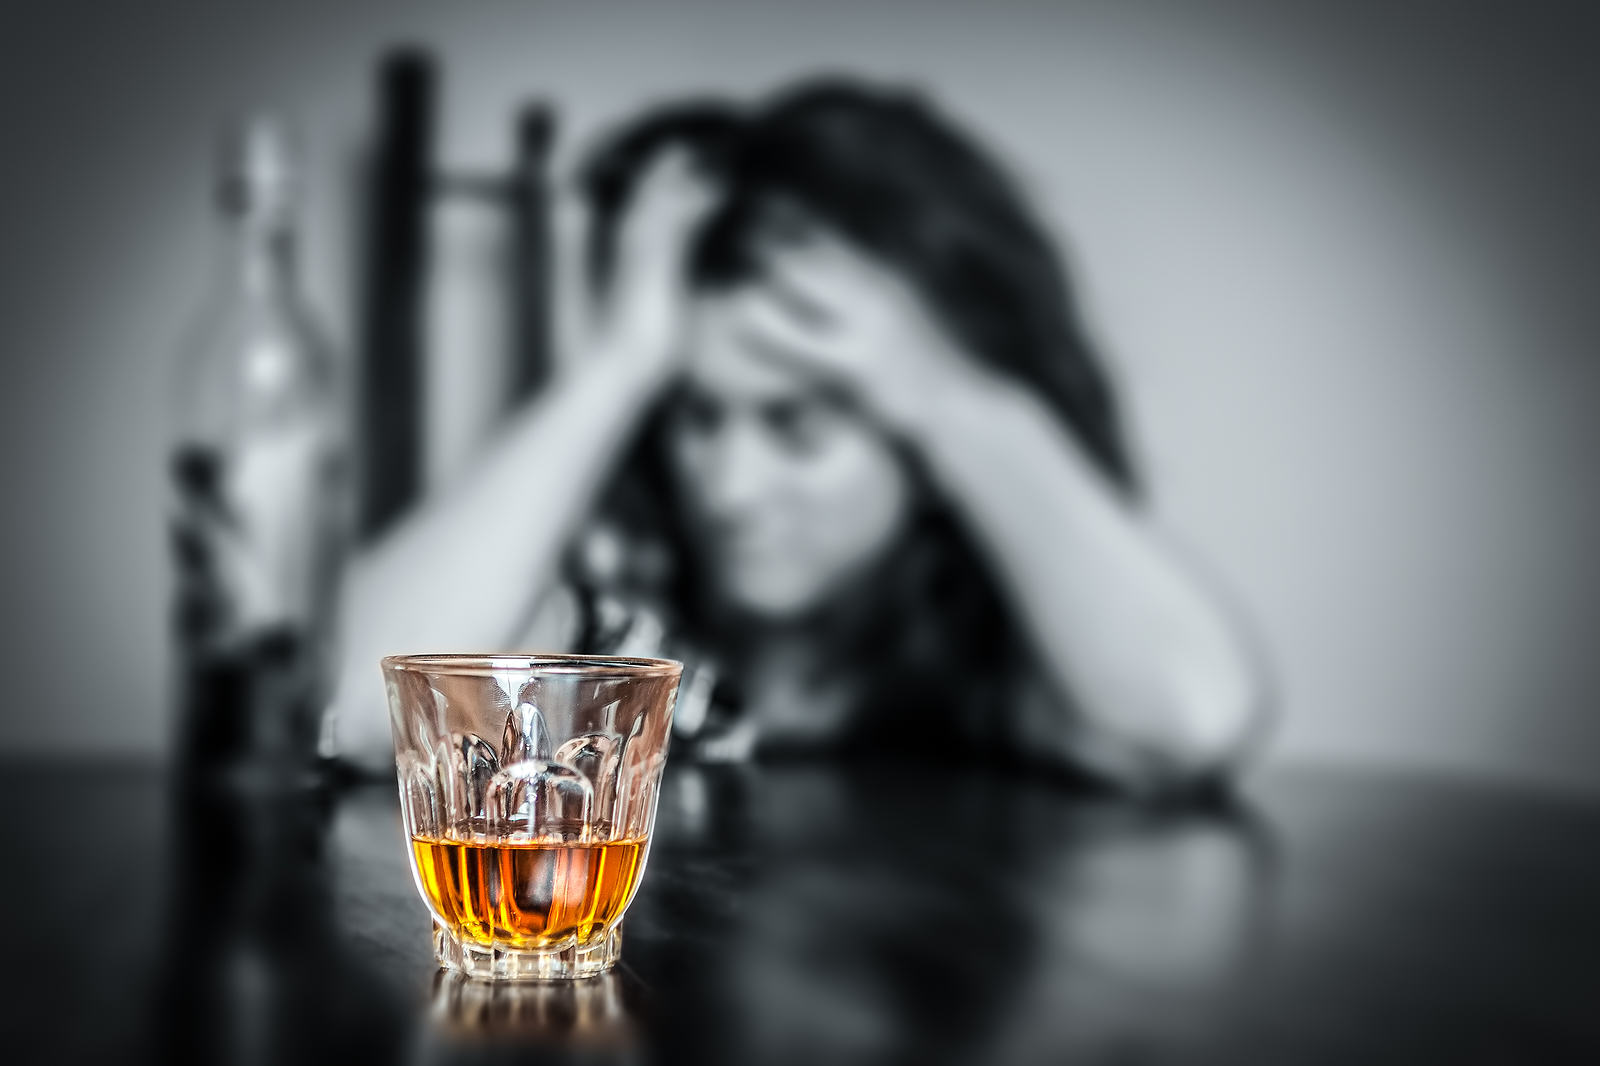 Girl Shares Shocking Photo To Warn About The Dangers Of Alcohol bigstock Alcohol addiction Portrait o 45287758